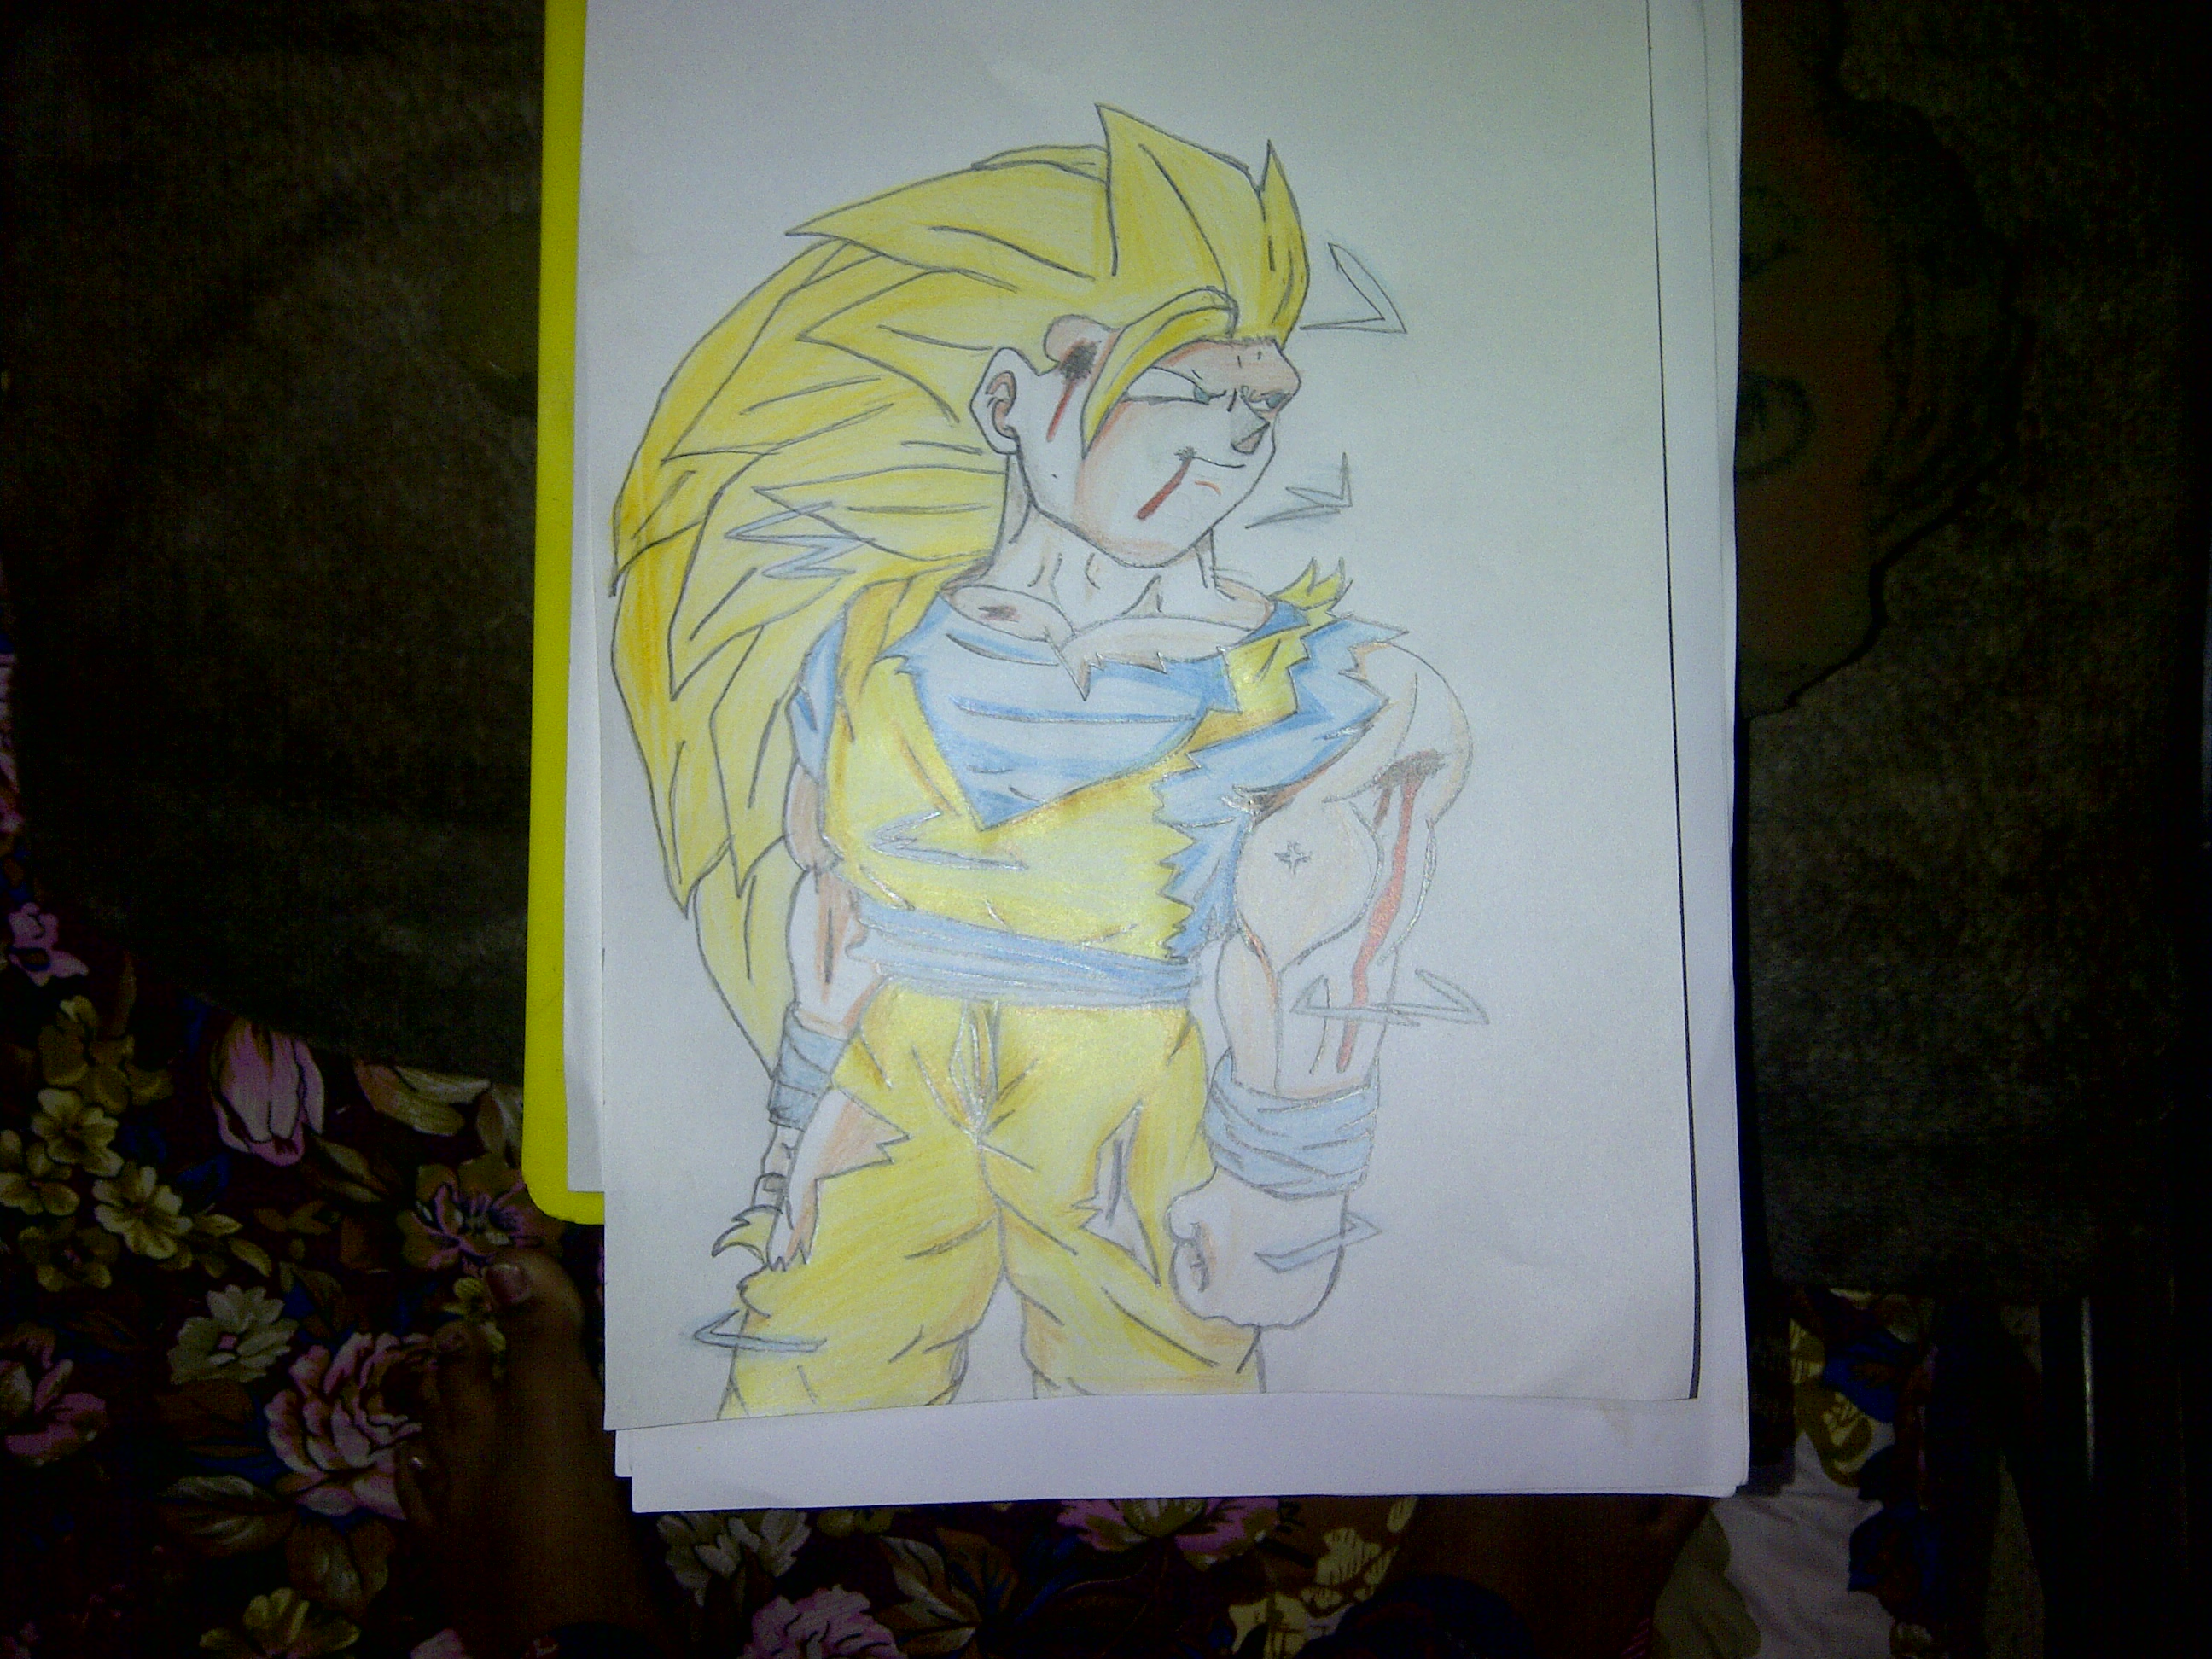 Goku Super Saiyan 3 Cartoon Drawing Fan Art 33439678